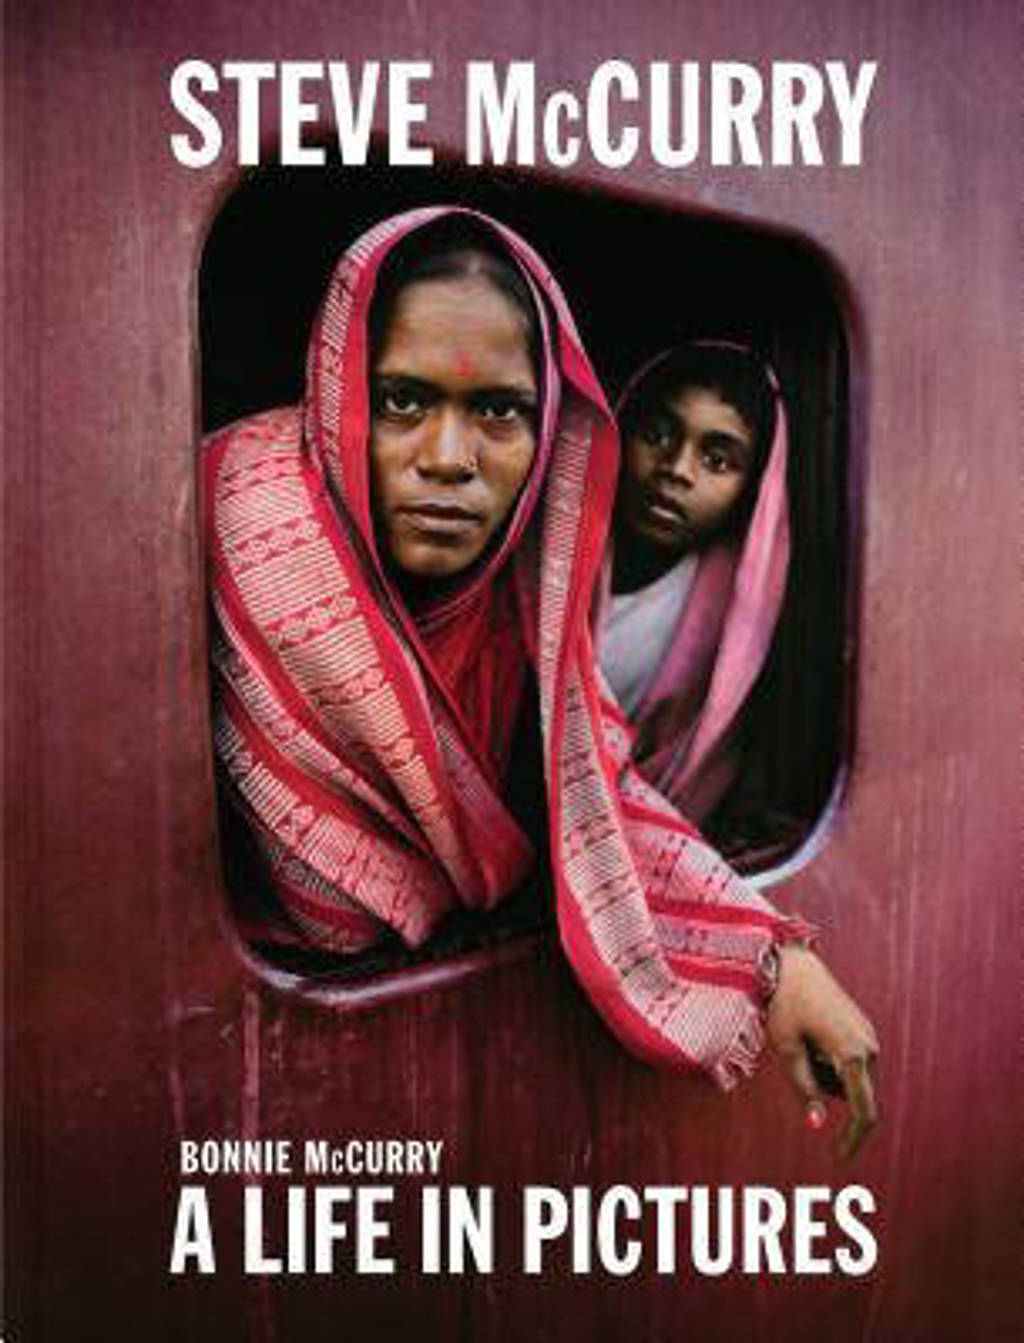 Steve Mccurry - Mccurry, Bonnie en McCurry, Steve